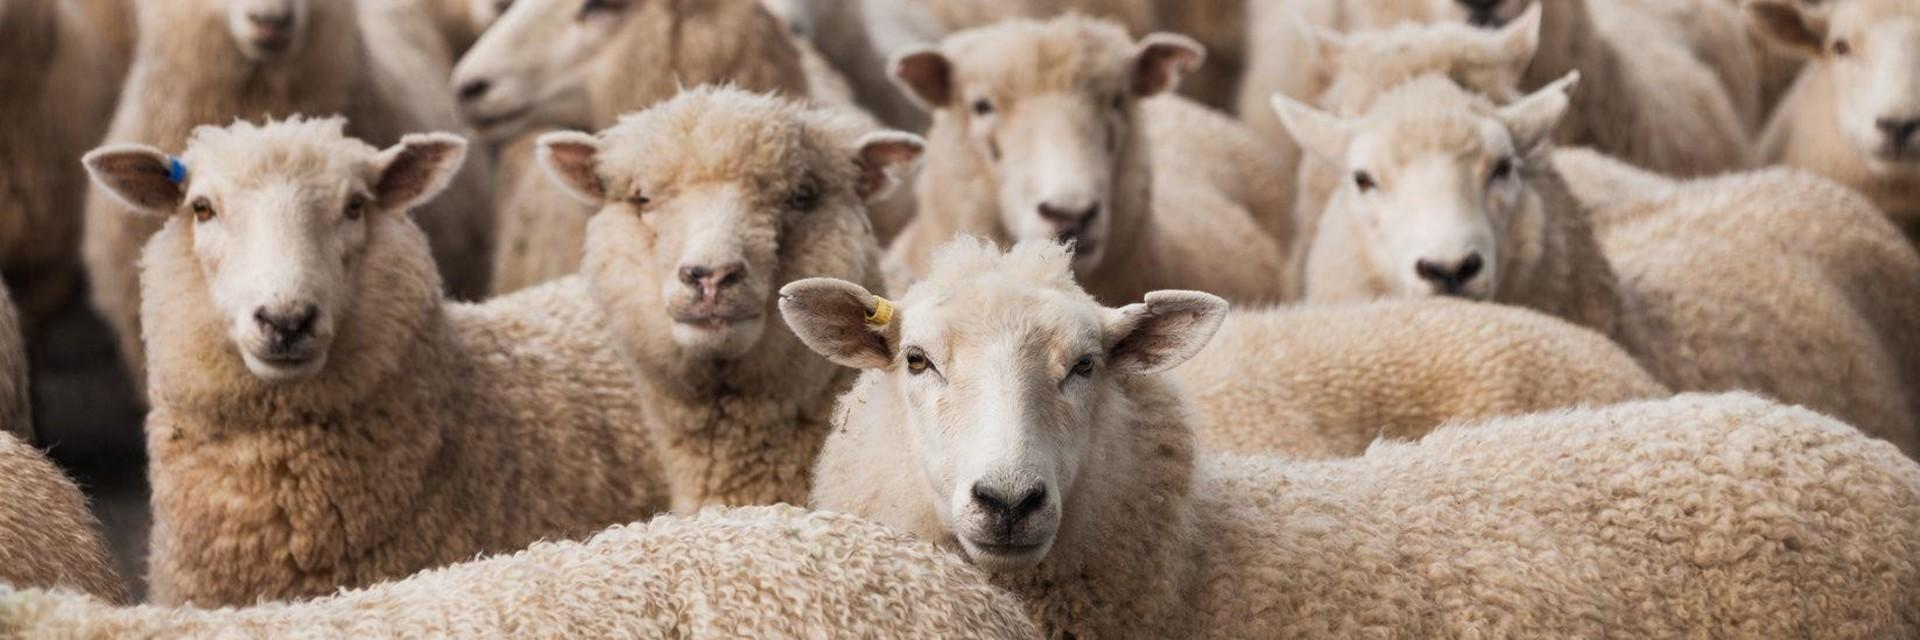 Australian sheep looking at camera